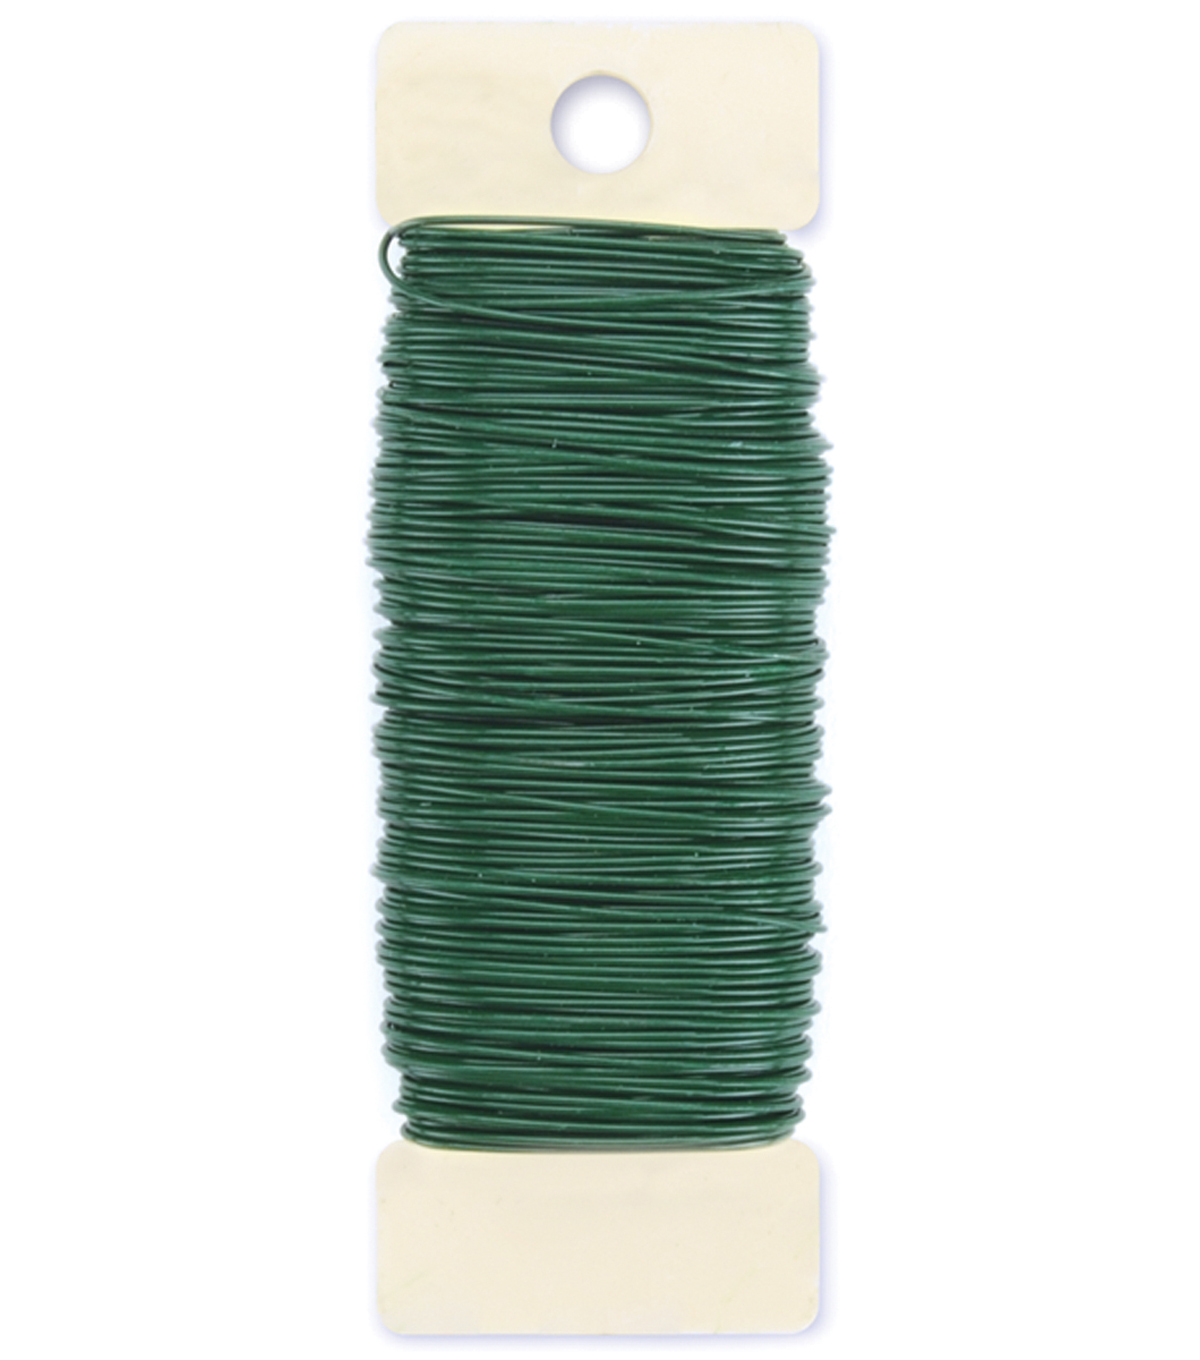 Panacea Products 22 Gauge Green Paddle Wire-1/4 lbs